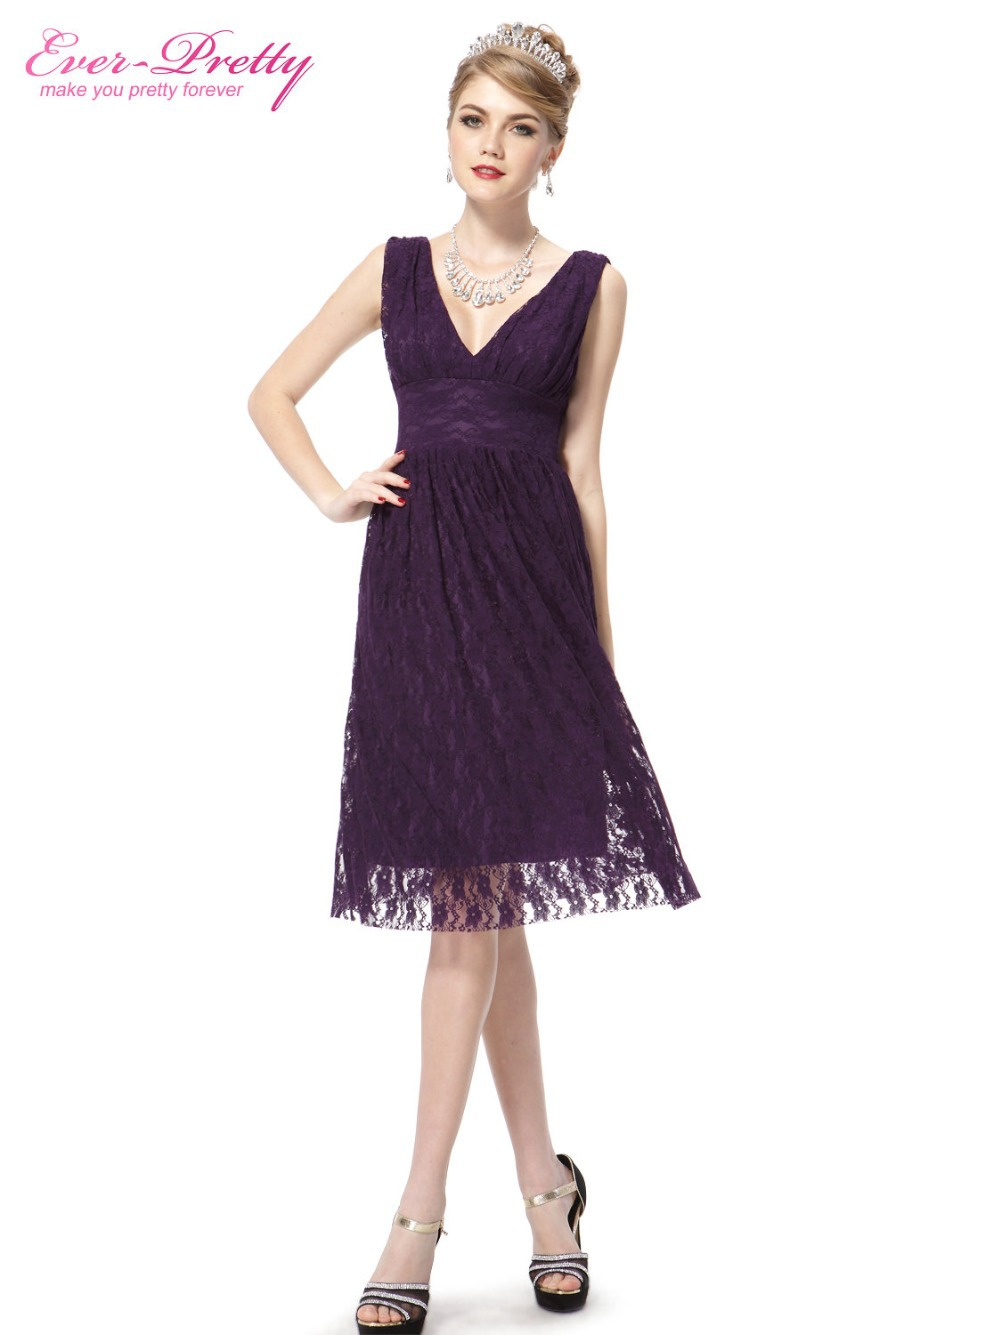 Bridesmaid dress ever pretty fast shipping 03410 507305092 sexy bridesmaid dress ever pretty fast shipping 03410 507305092 sexy double v neck lace bridesmaid dress in bridesmaid dresses from weddings events on ombrellifo Images